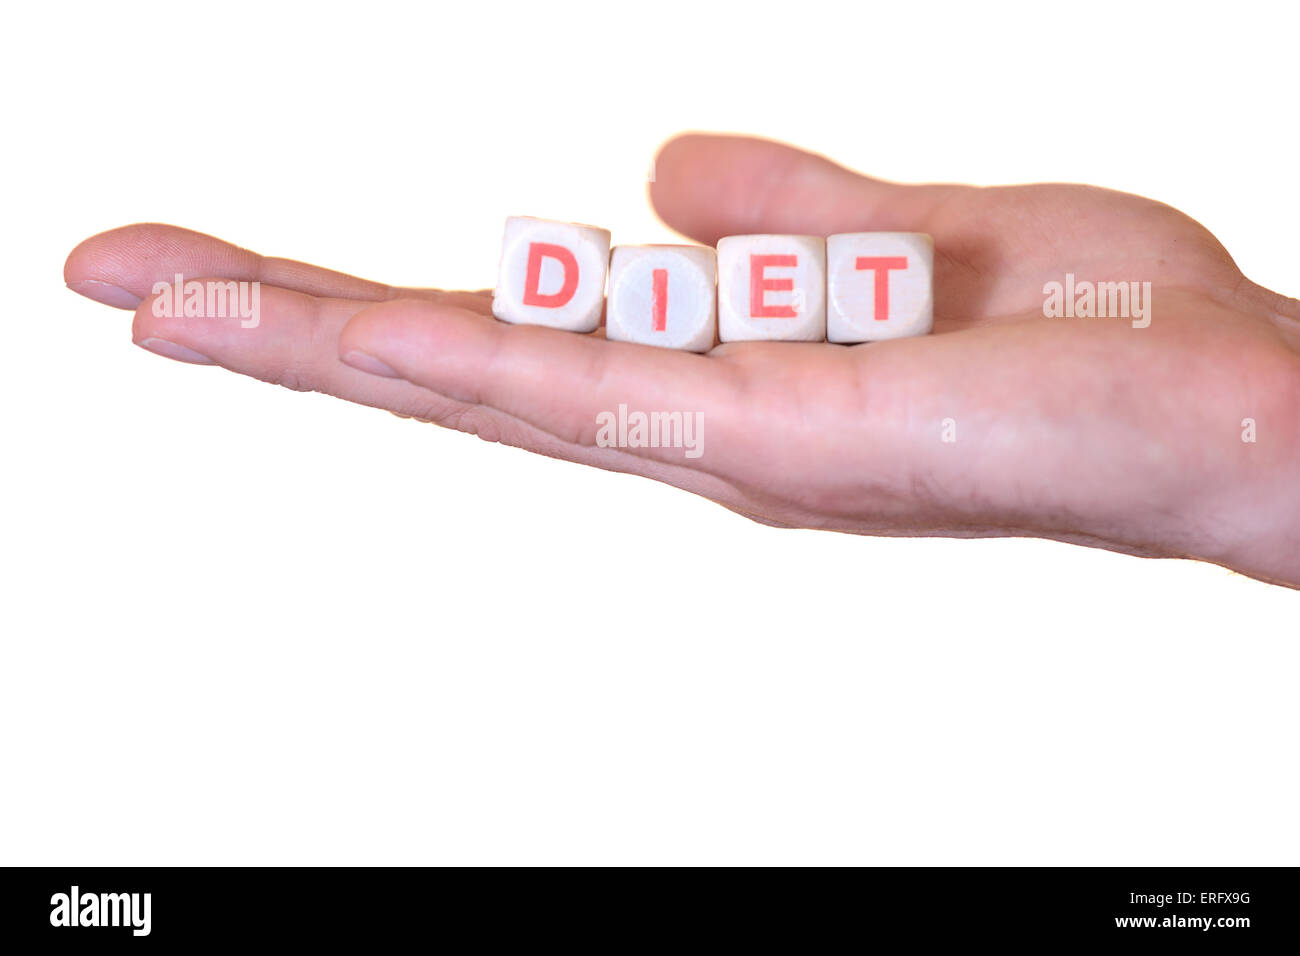 The word diet written with wooden dice on the he palm of the hand. Isolated on white background - Stock Image